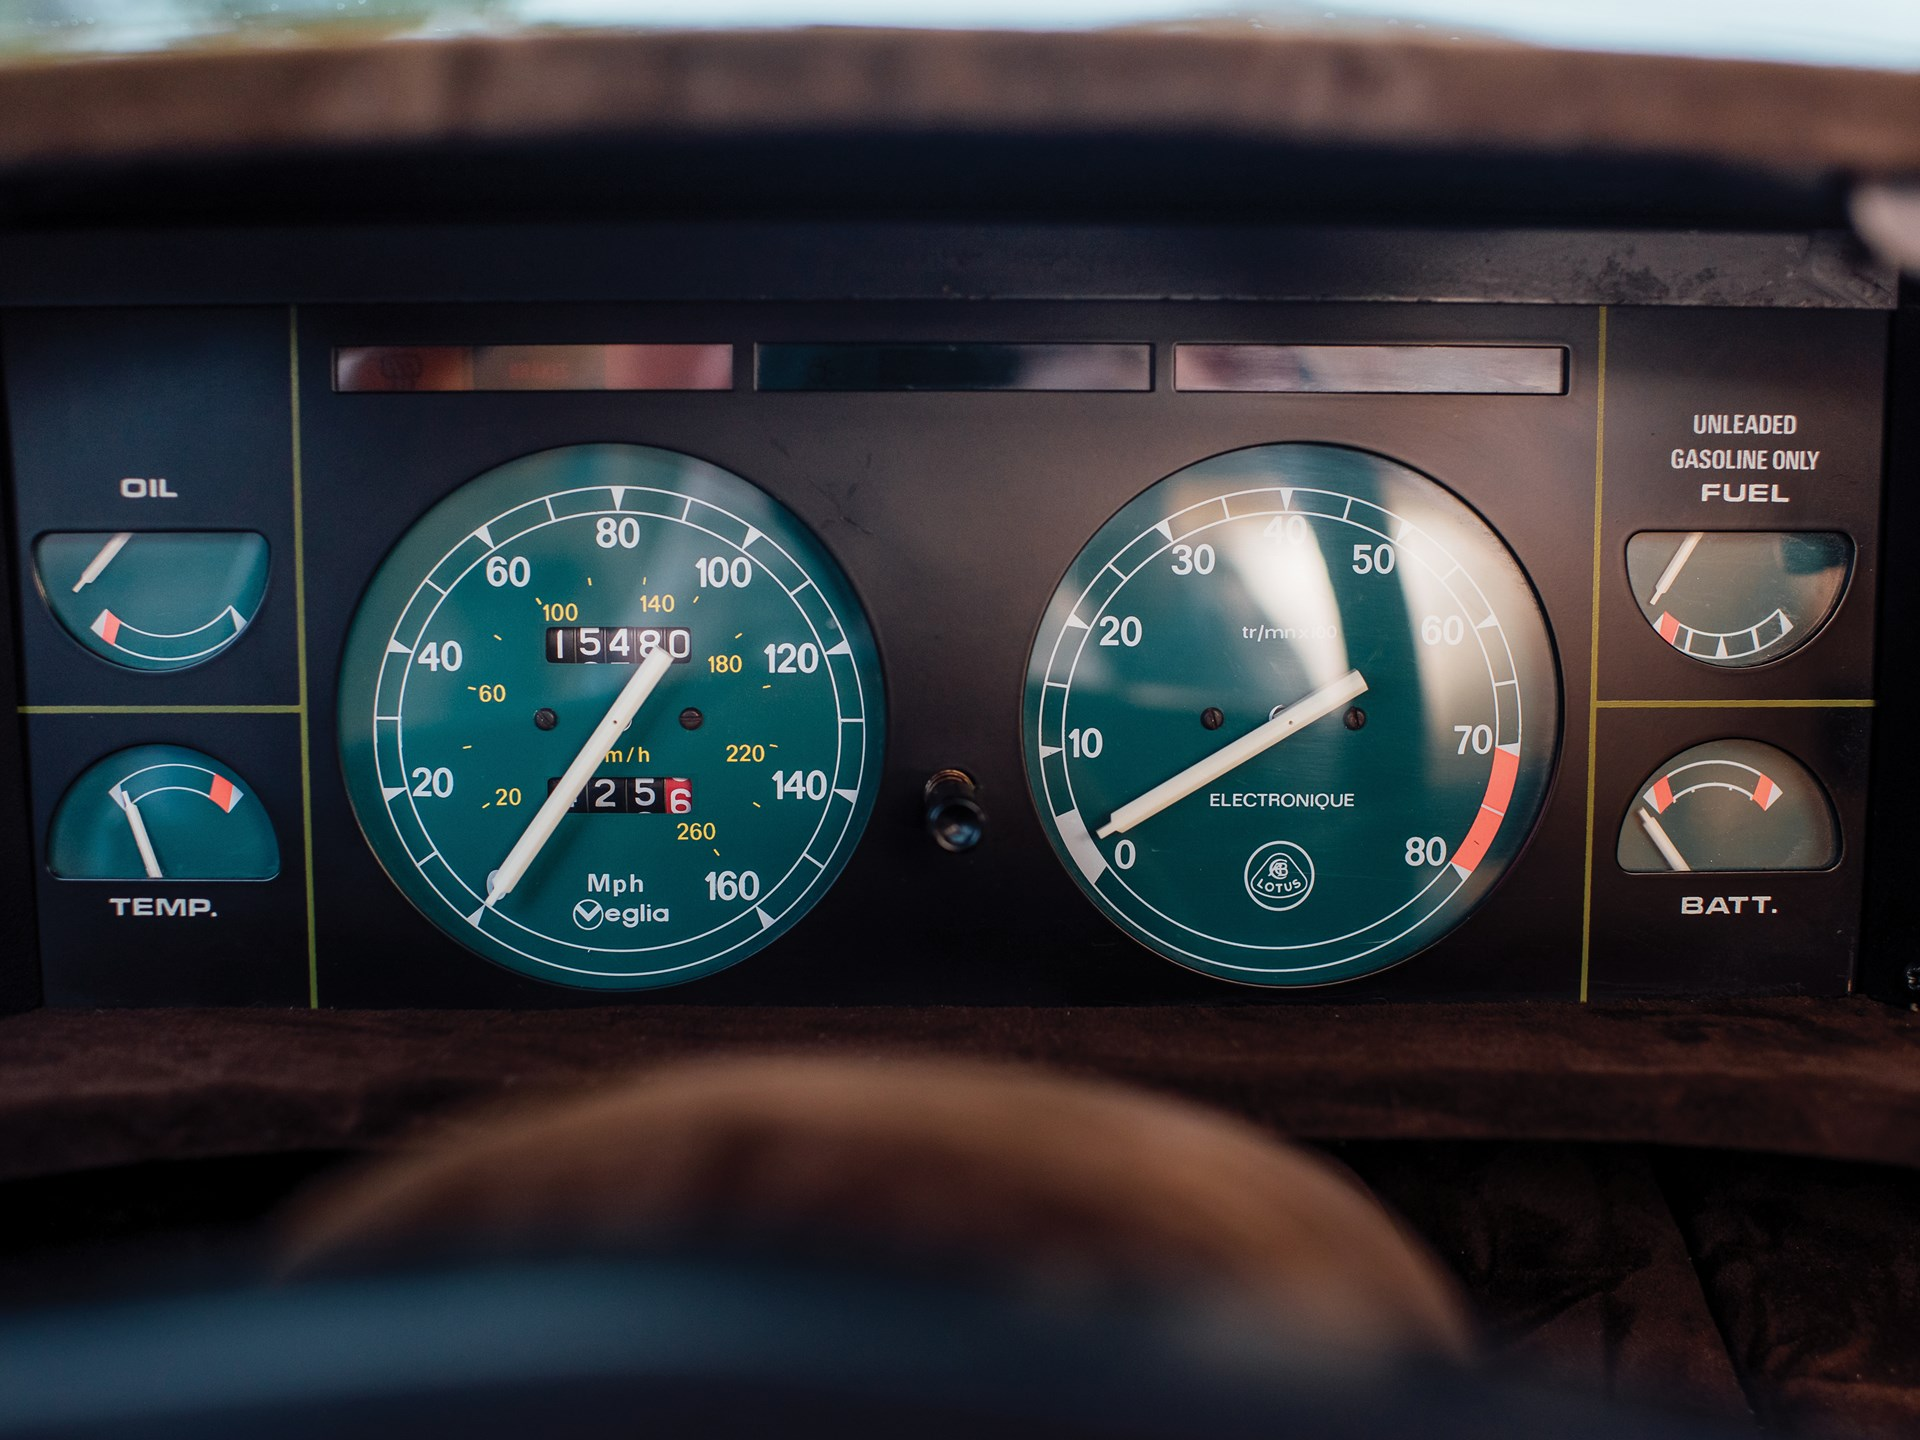 1977 Lotus Esprit Series 1 gauges